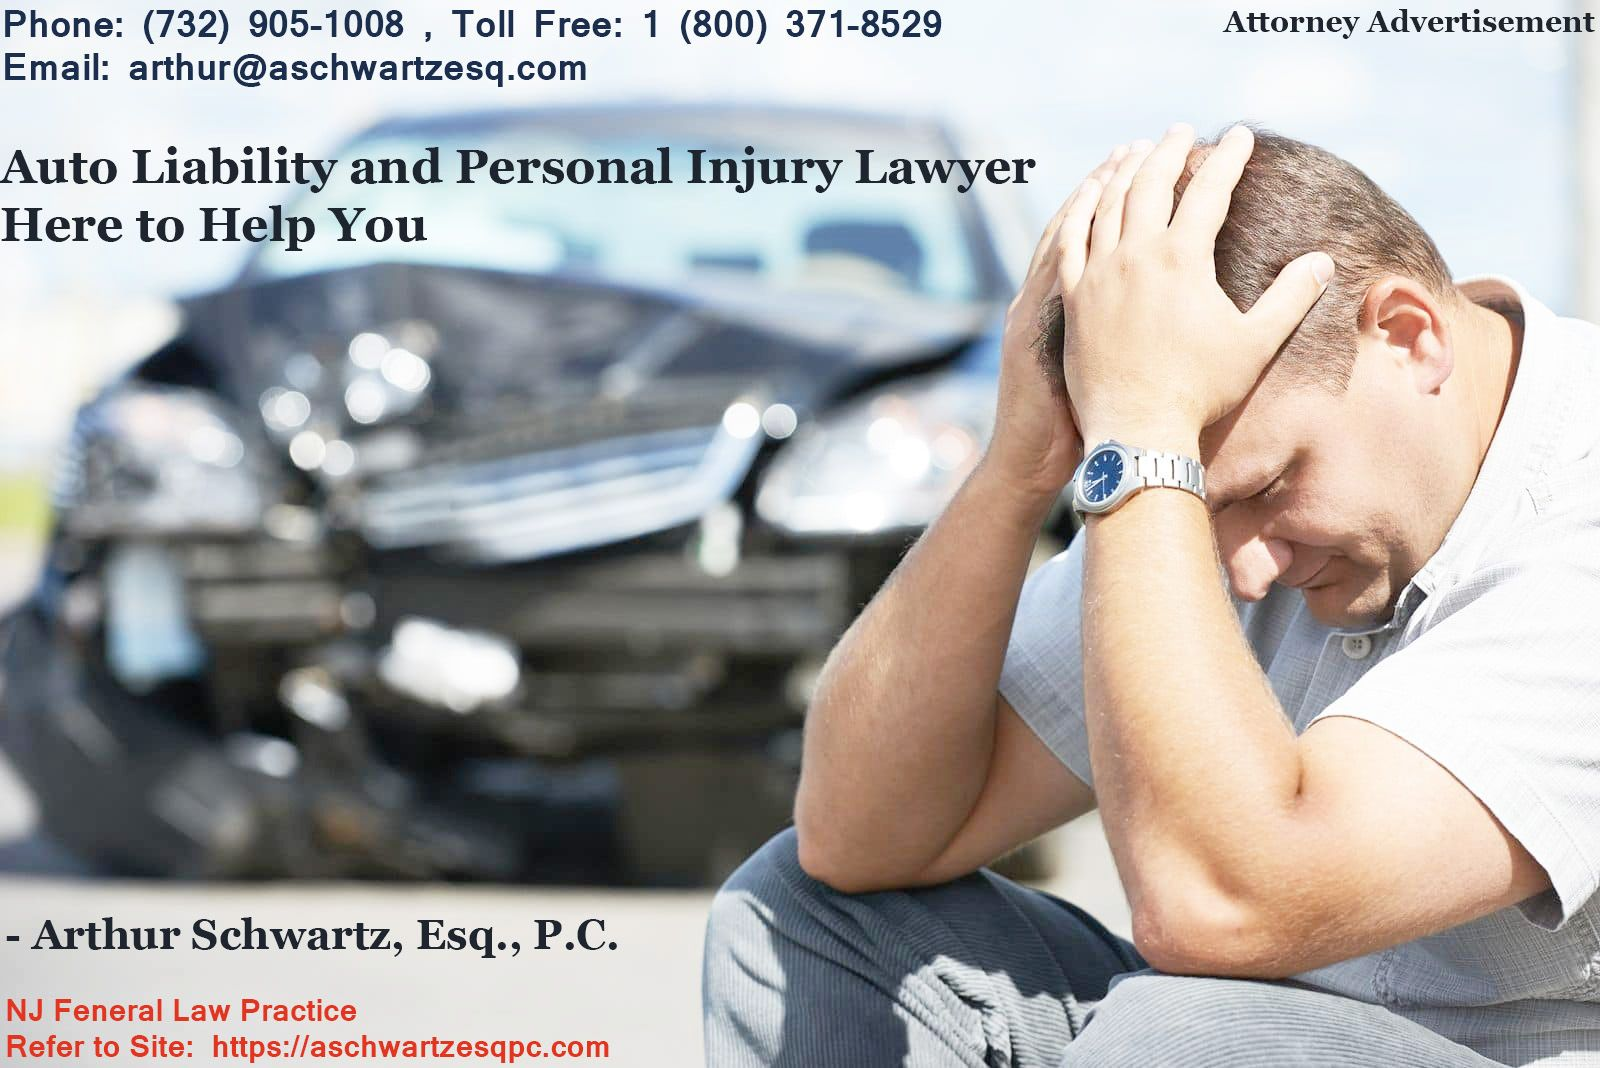 Are you in search of the best auto accident attorney near